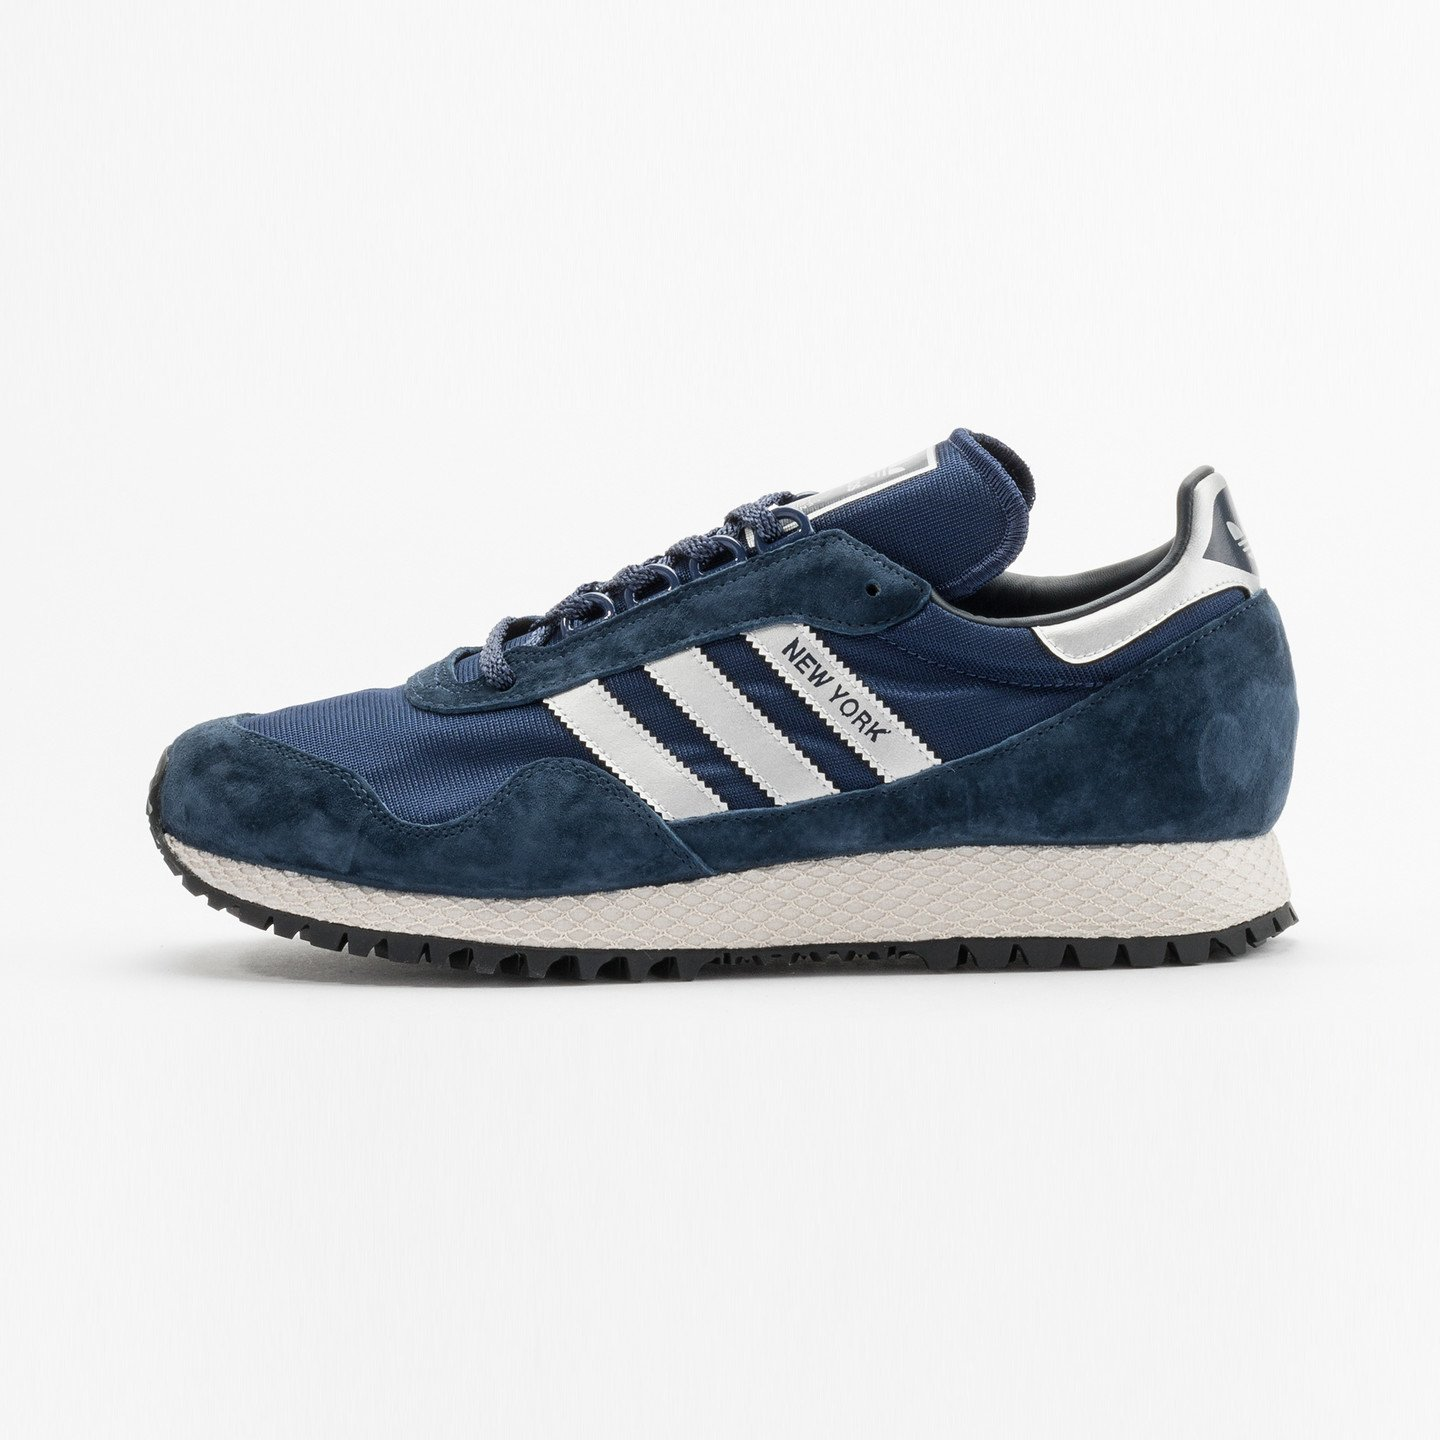 Adidas New York Collegiate Navy / Metallic Silver BB1188-42.66